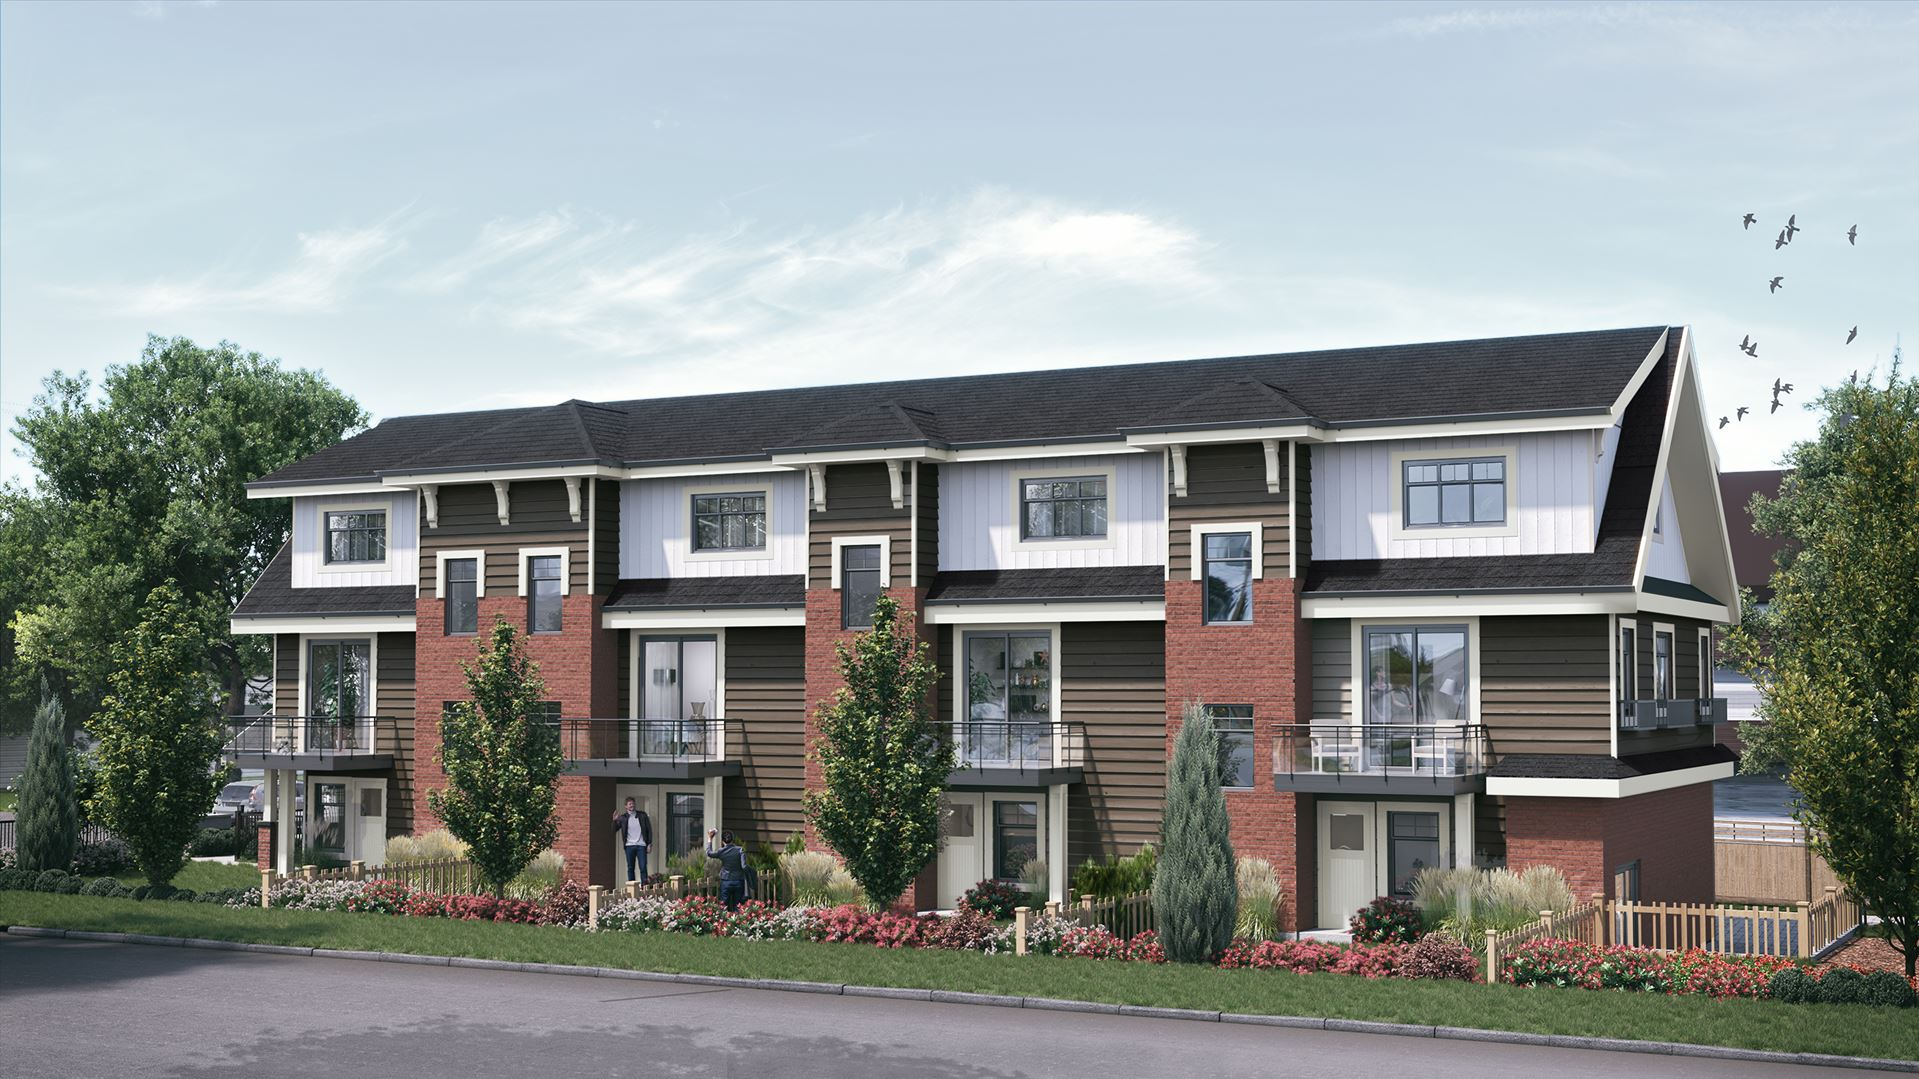 Burgundy By Konic Homes – Availability, Prices, Plans